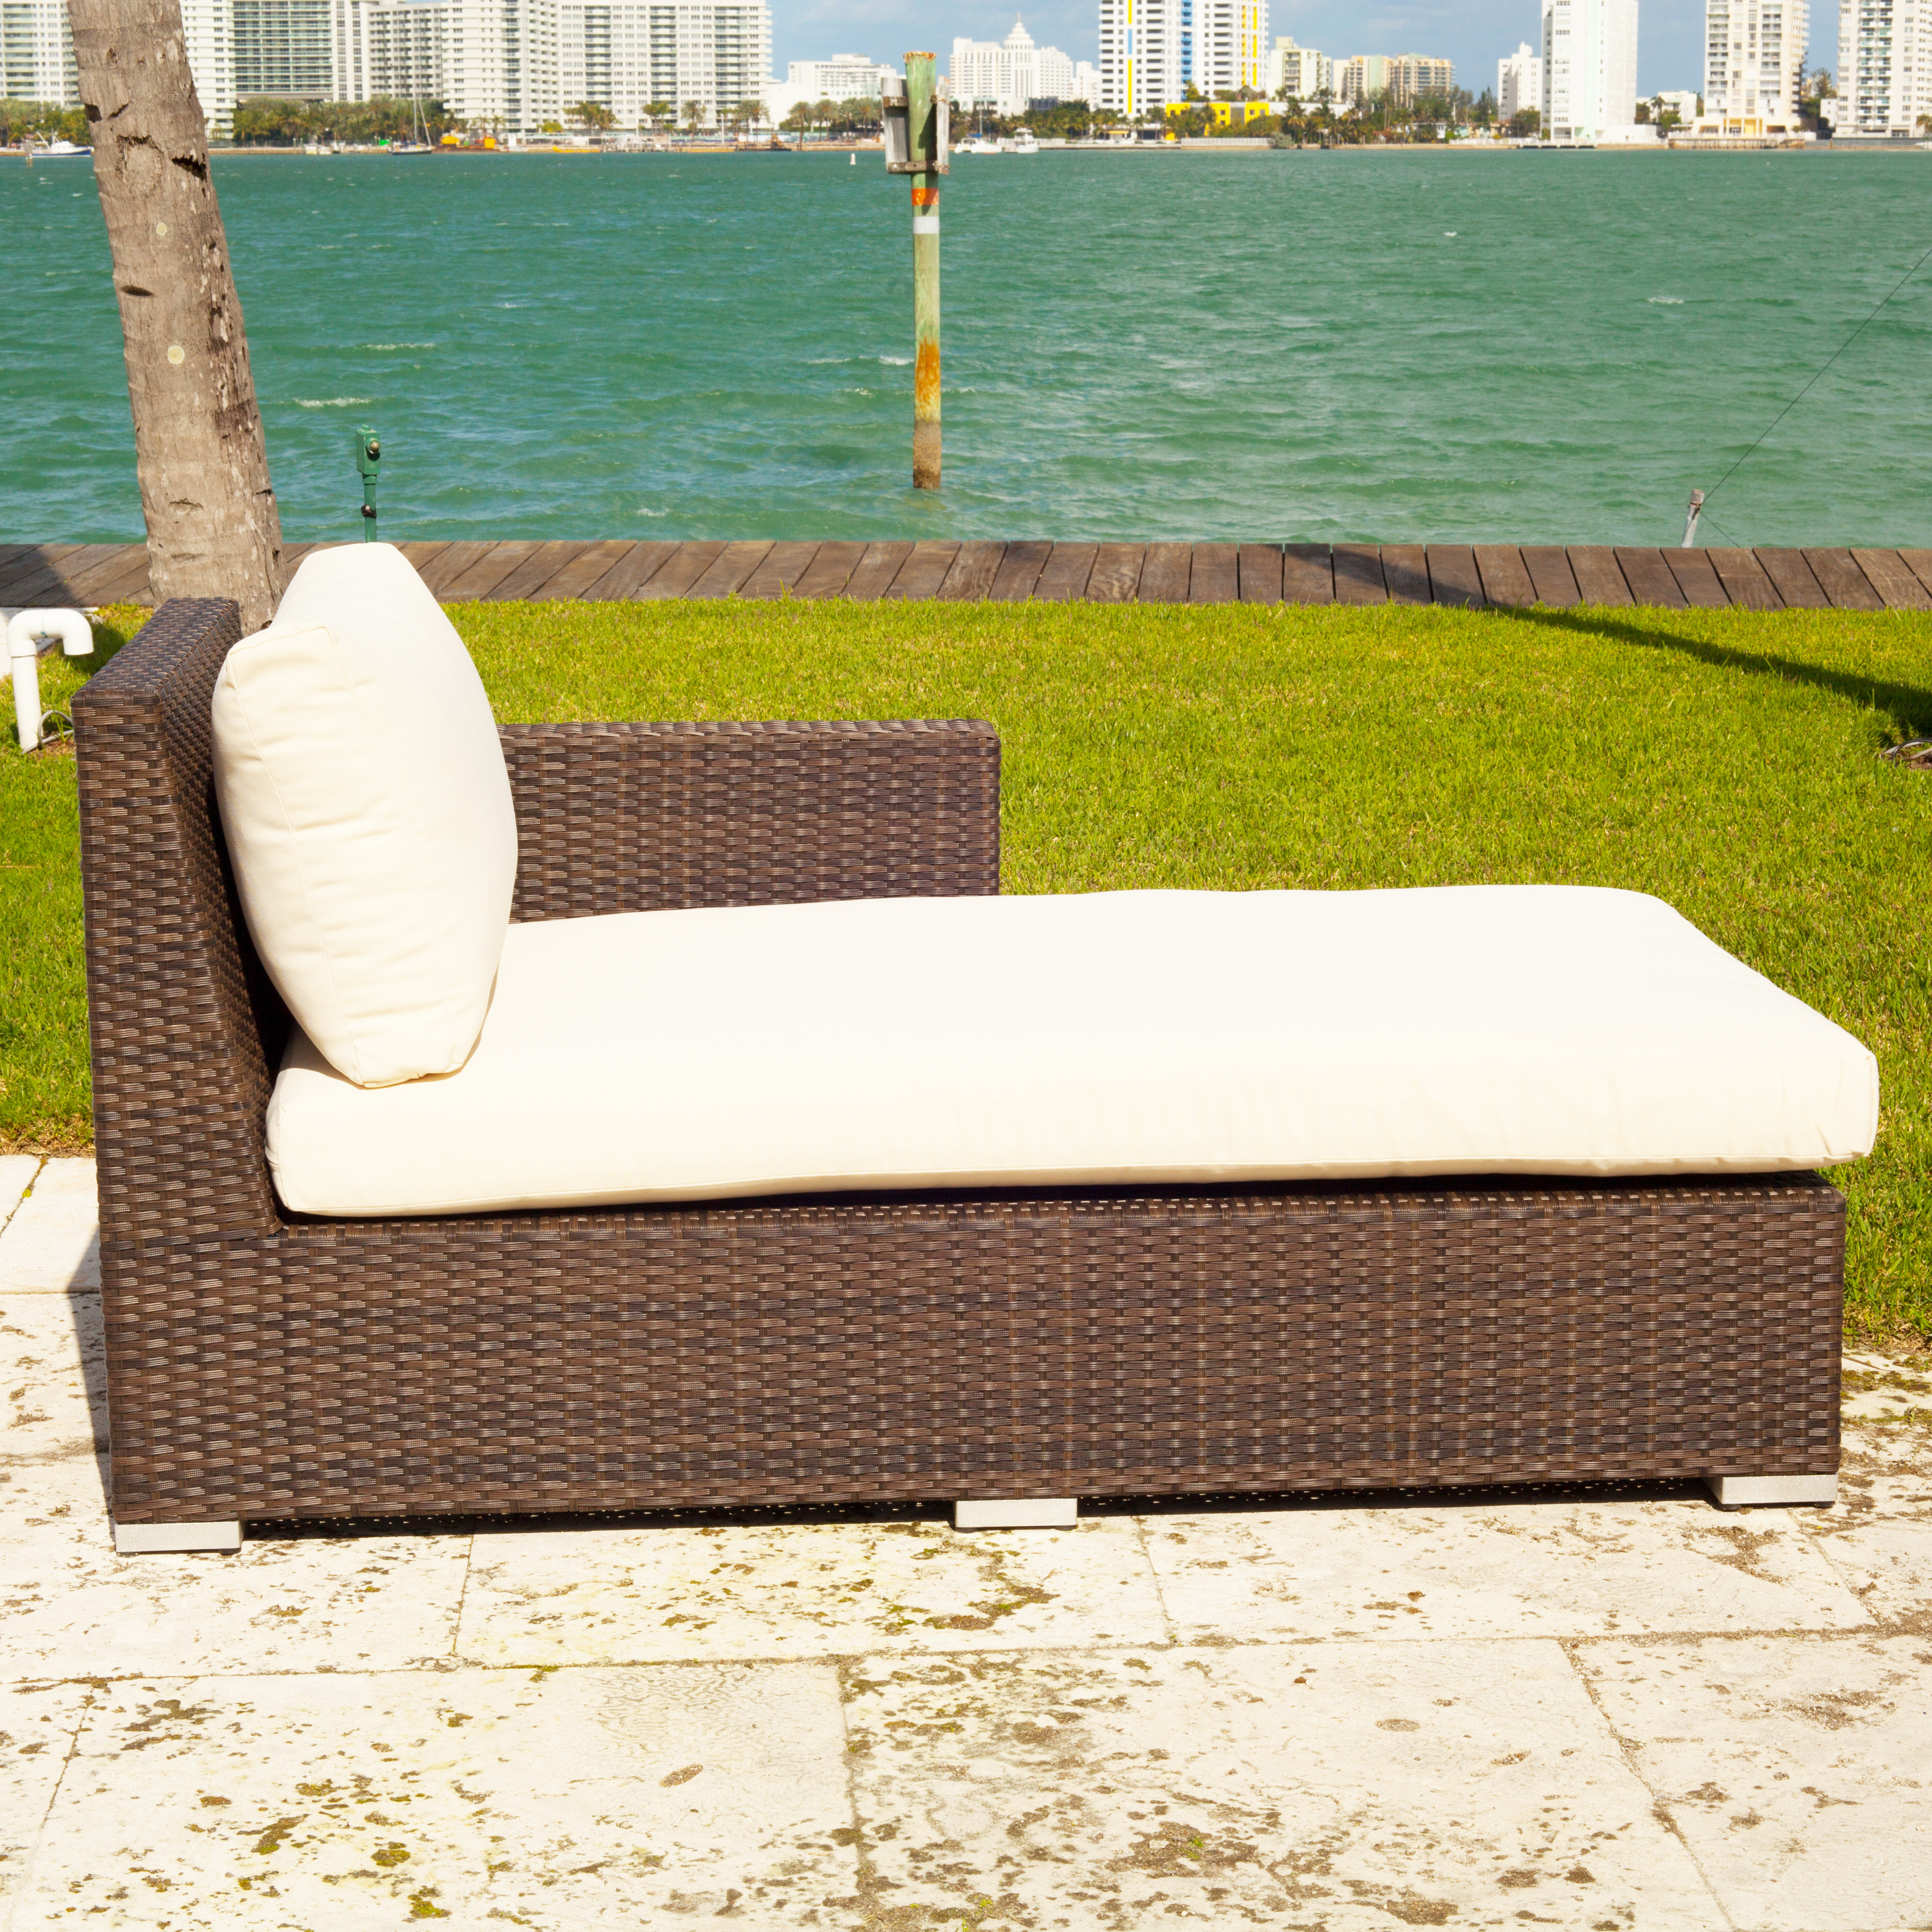 seating club lounge zen outdoor chair browse source furniture so wicker